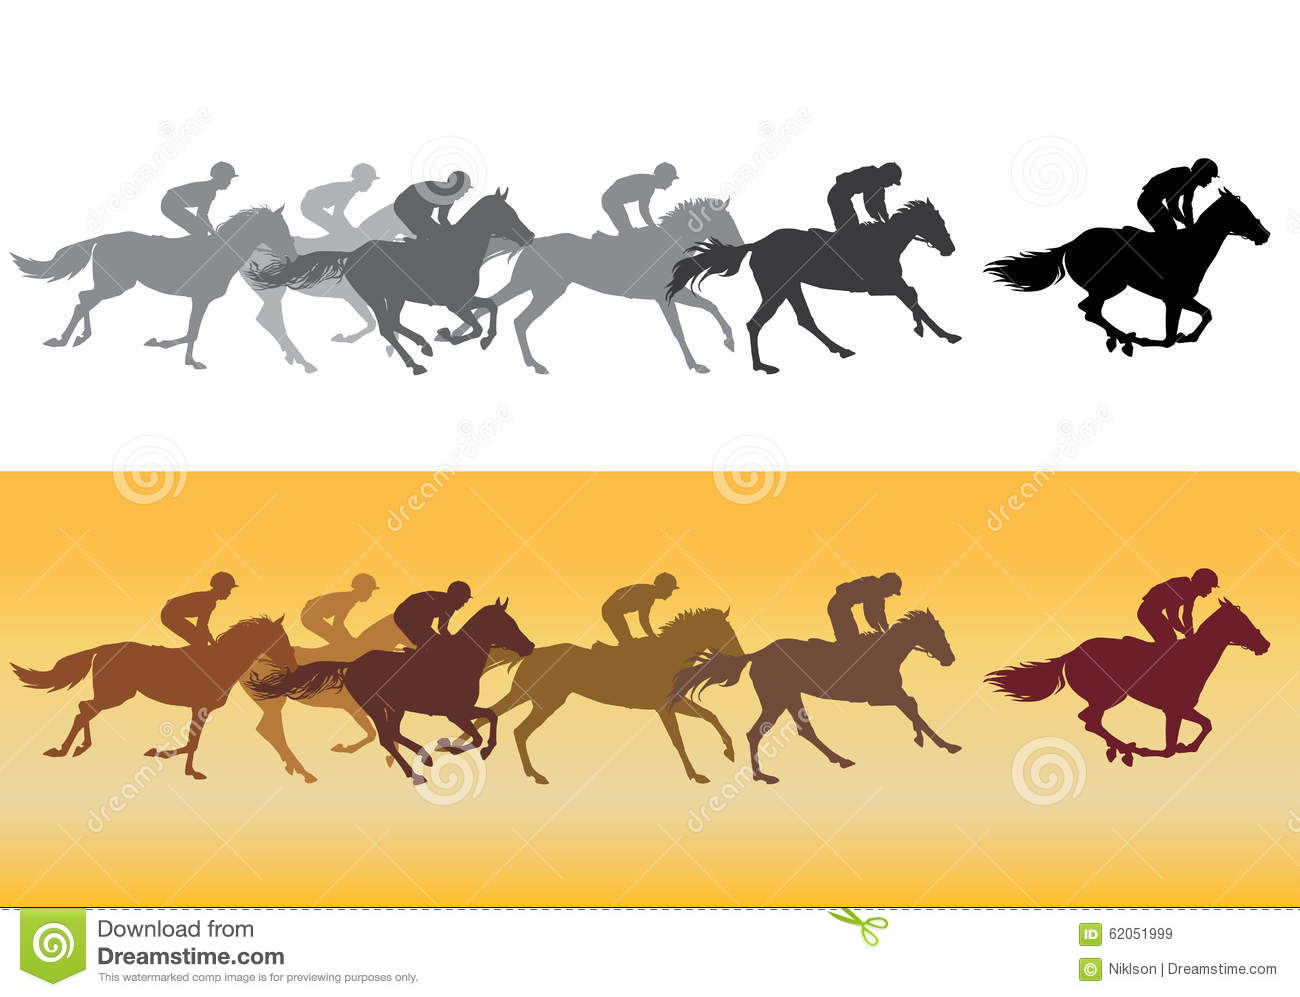 Horse Racing Silhouette Stock Vector Illustration Of Leader 62051999